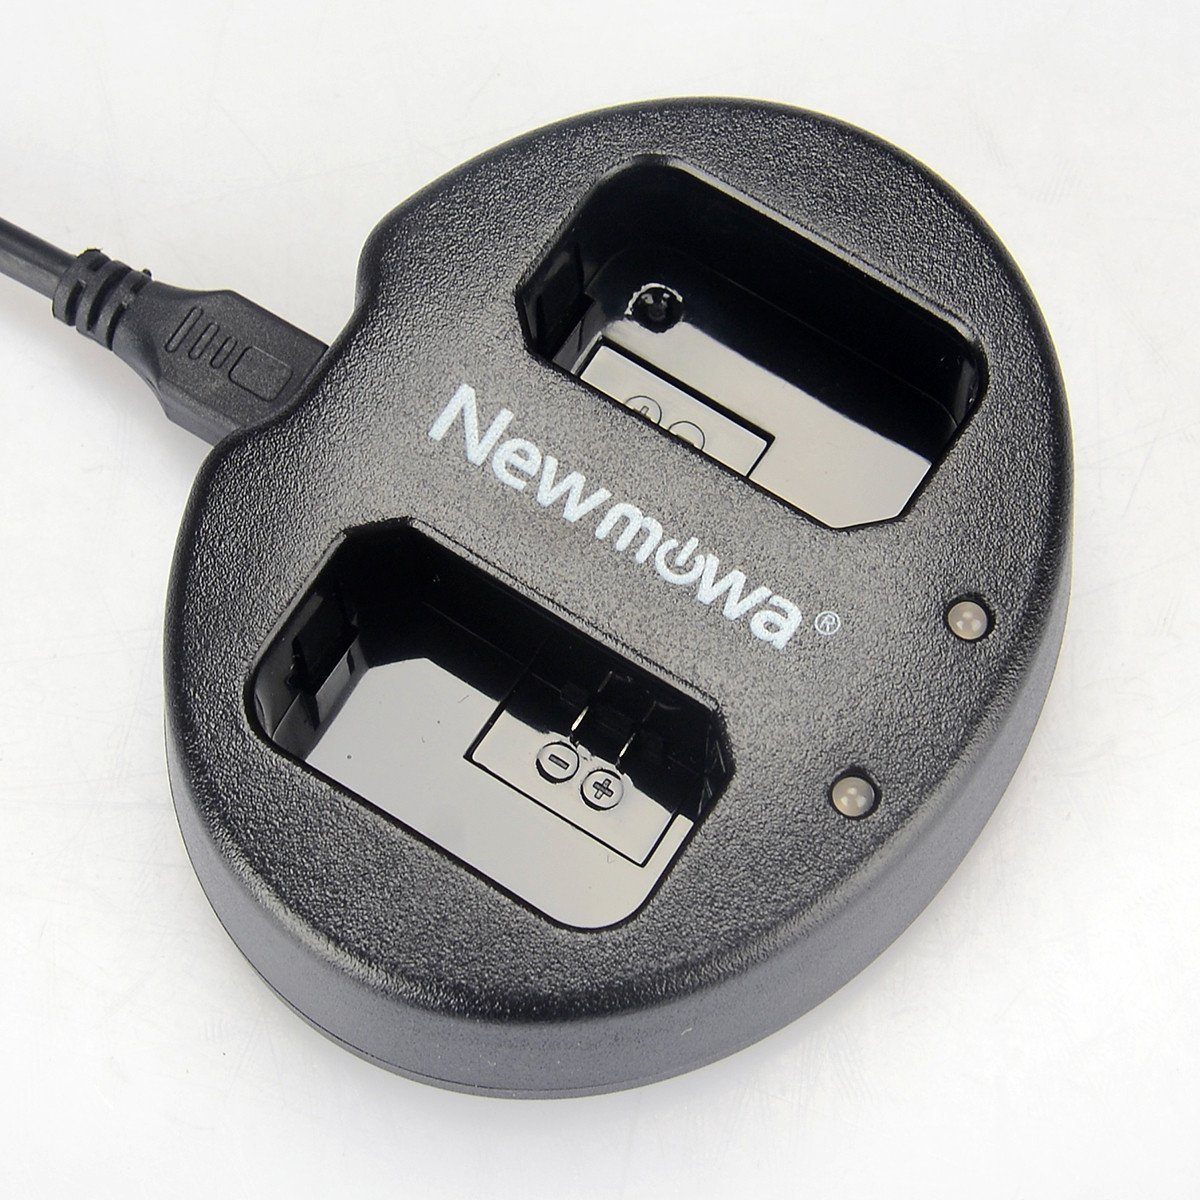 Newmowa Dual USB Charger for Sony NP-FW50 and Alpha a3000, Alpha a5000, Alpha a6000, A6300,Alpha 7, a7, Alpha 7R, a7R, Alpha 7S, a7S, NEX-3, NEX-3N, NEX-5, NEX-5N, NEX-5R, NEX-5T, NEX-6, NEX-7, NEX-C3, NEX-F3, SLT-A33, SLT-A35, SLT-A37, SLT-A55V, Cyber-sh